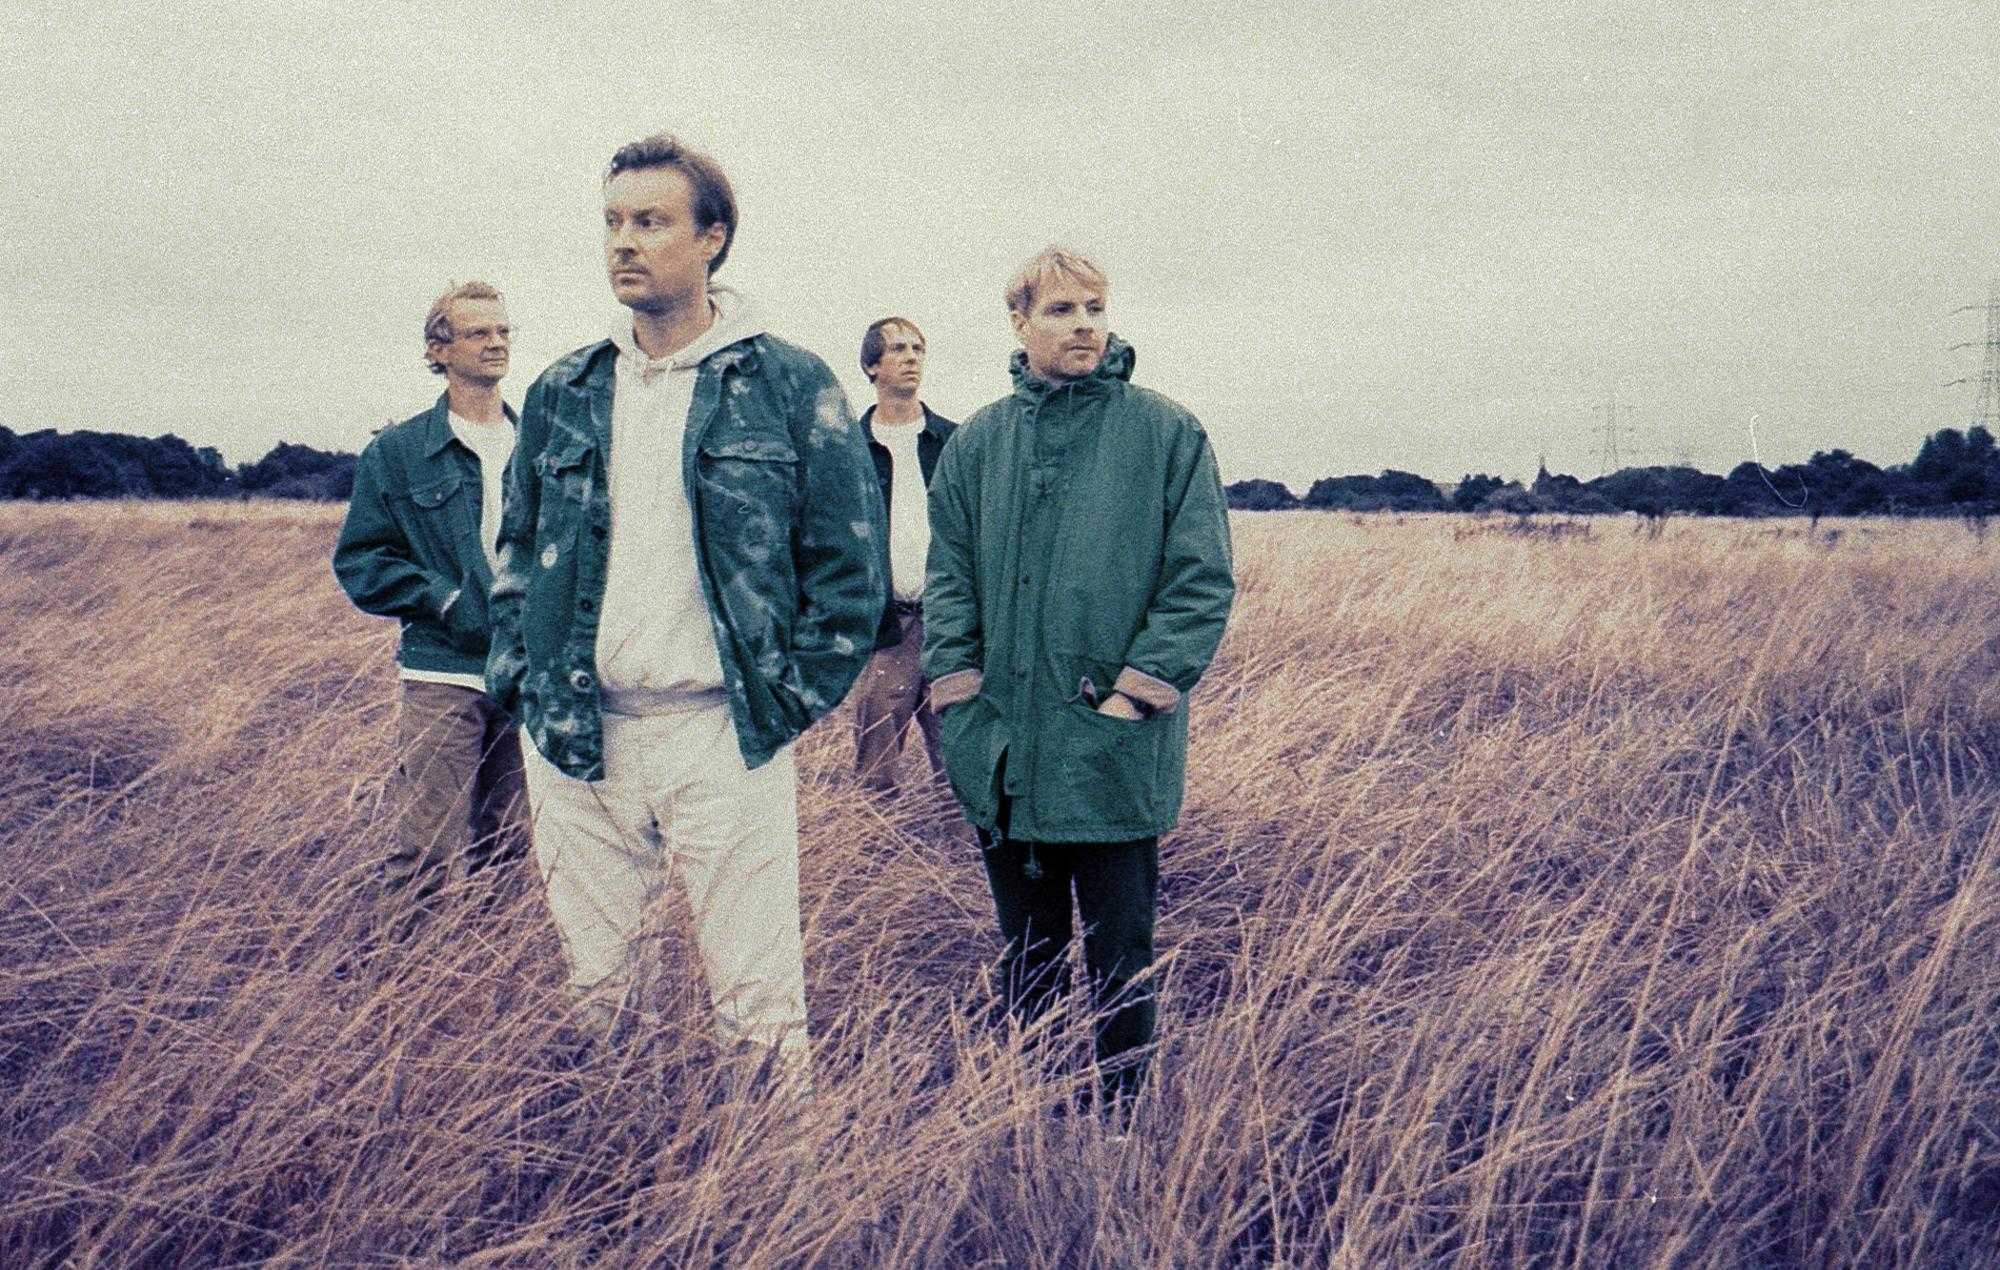 Django Django announce deluxe edition of 'Glowing In The Dark' with new  song 'Under Fire'